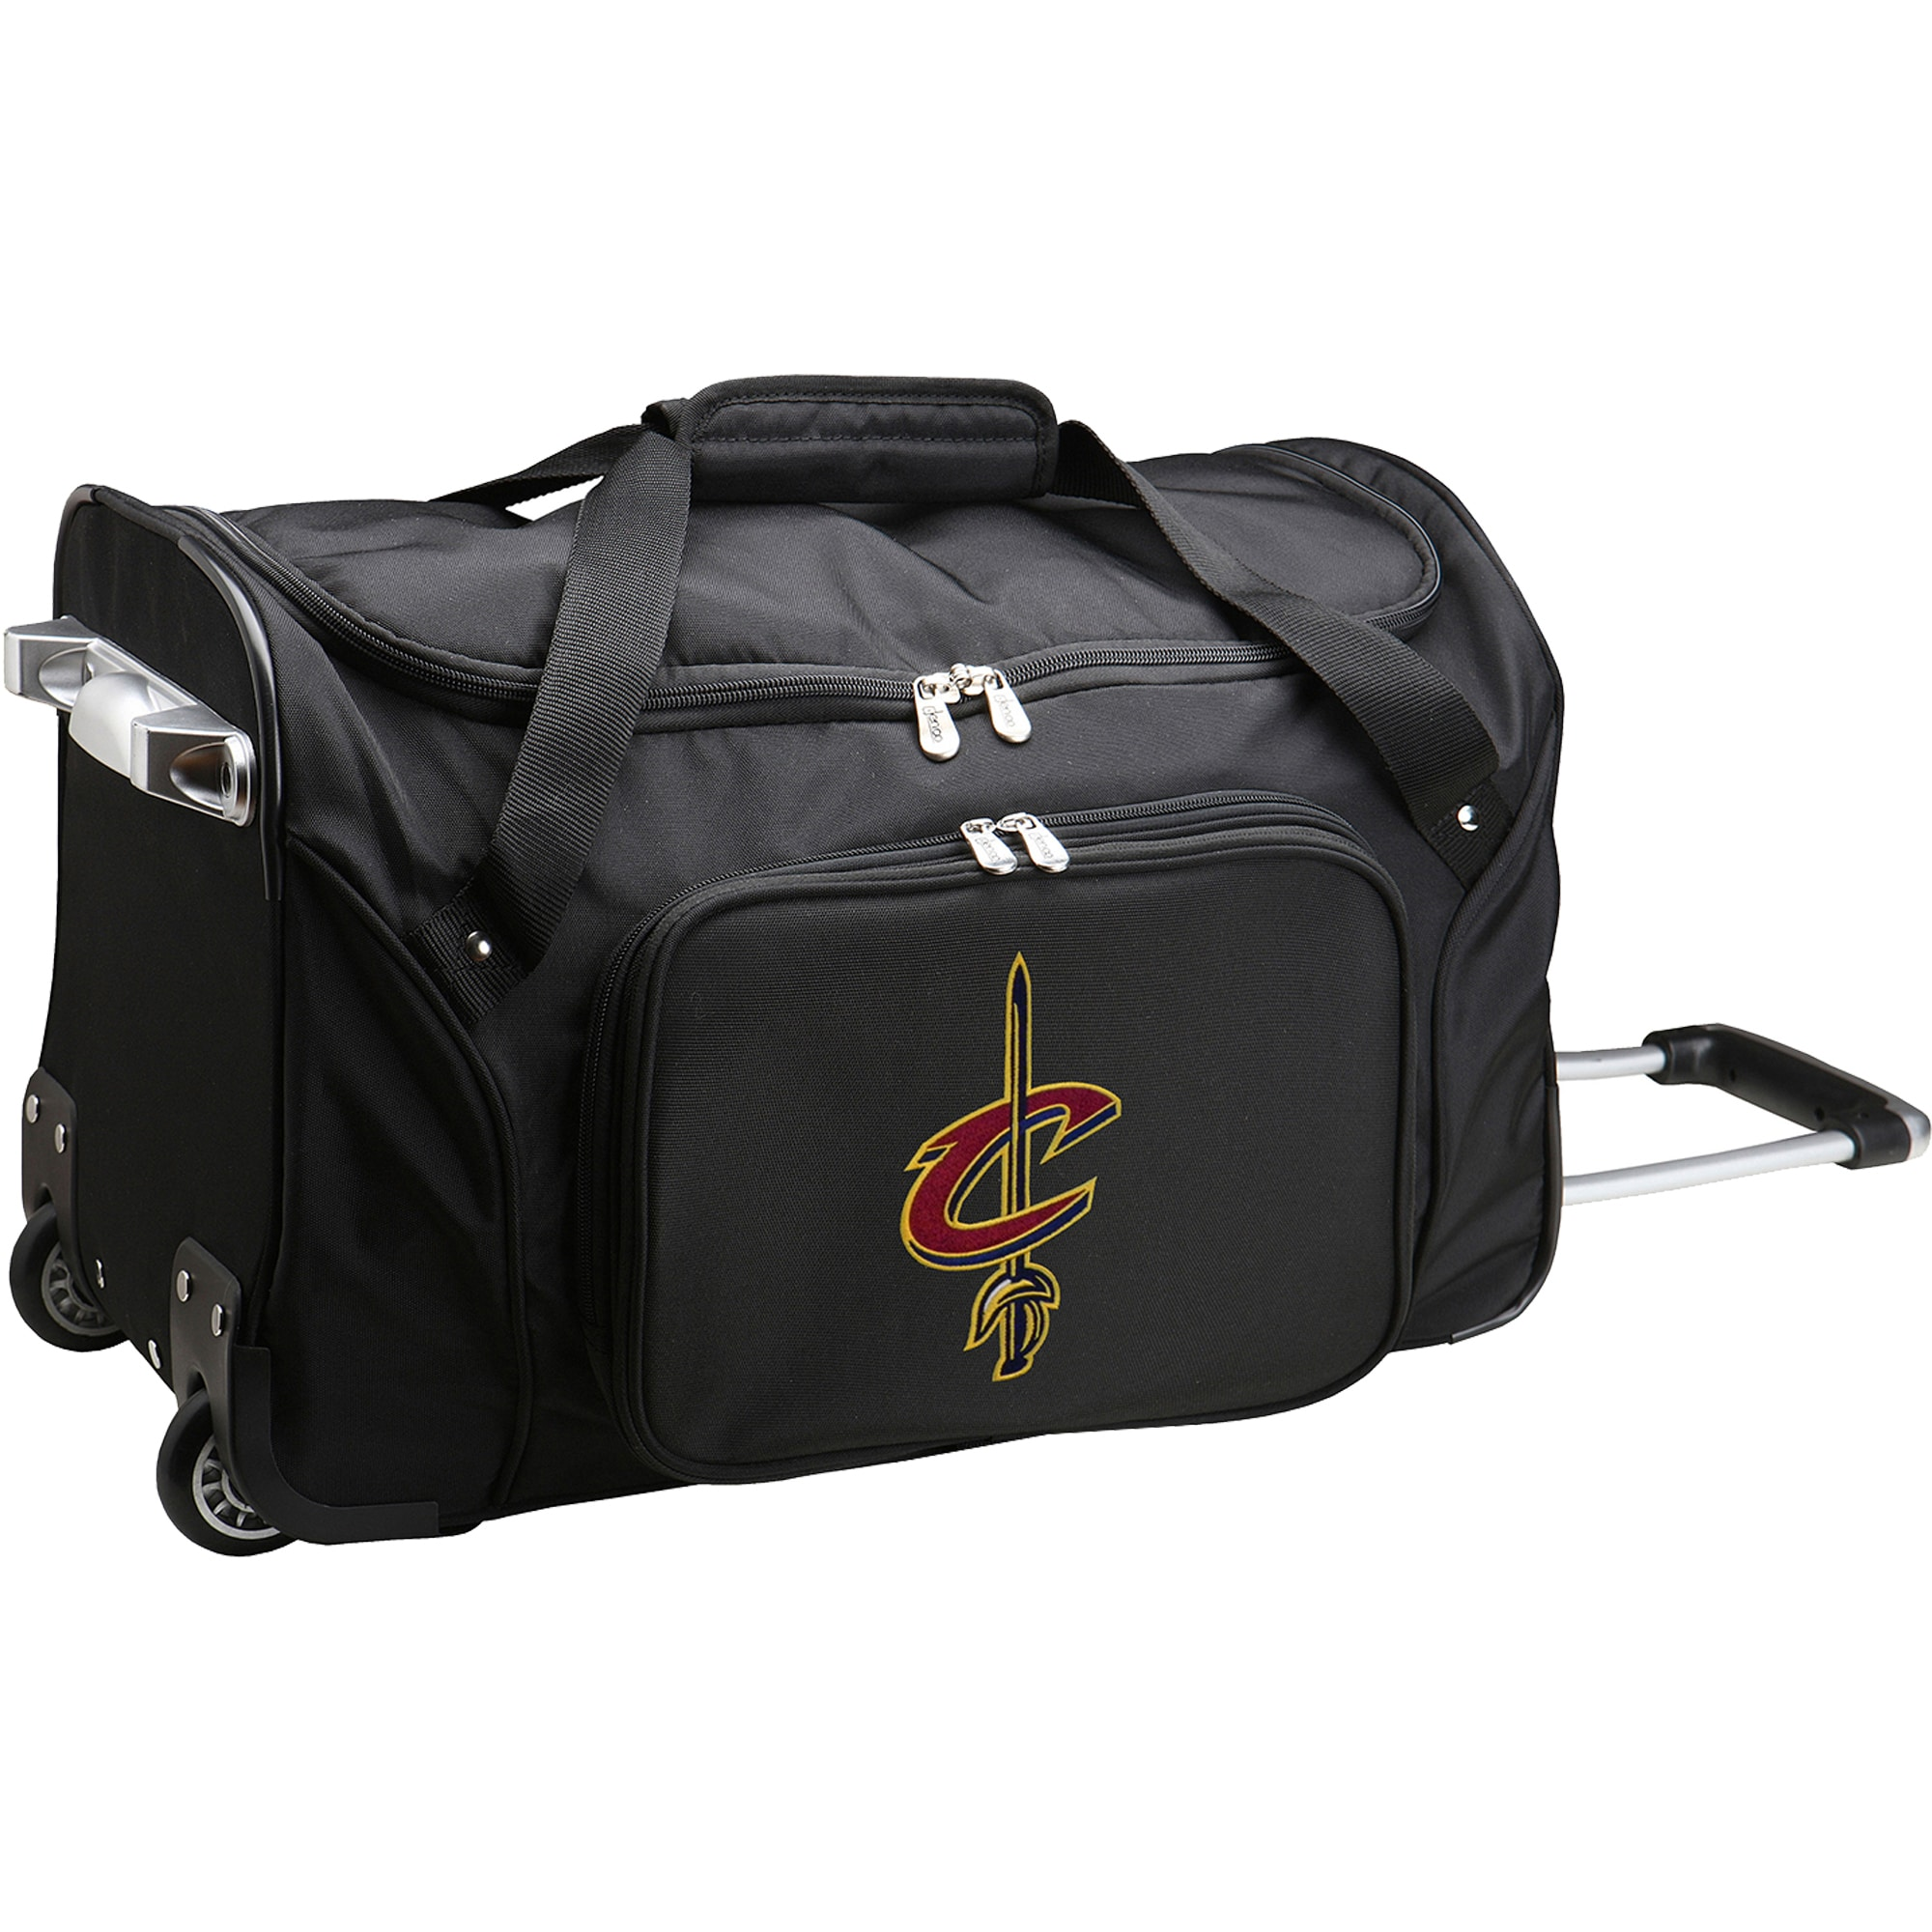 "Cleveland Cavaliers 22"" 2-Wheeled Duffel Bag - Black"